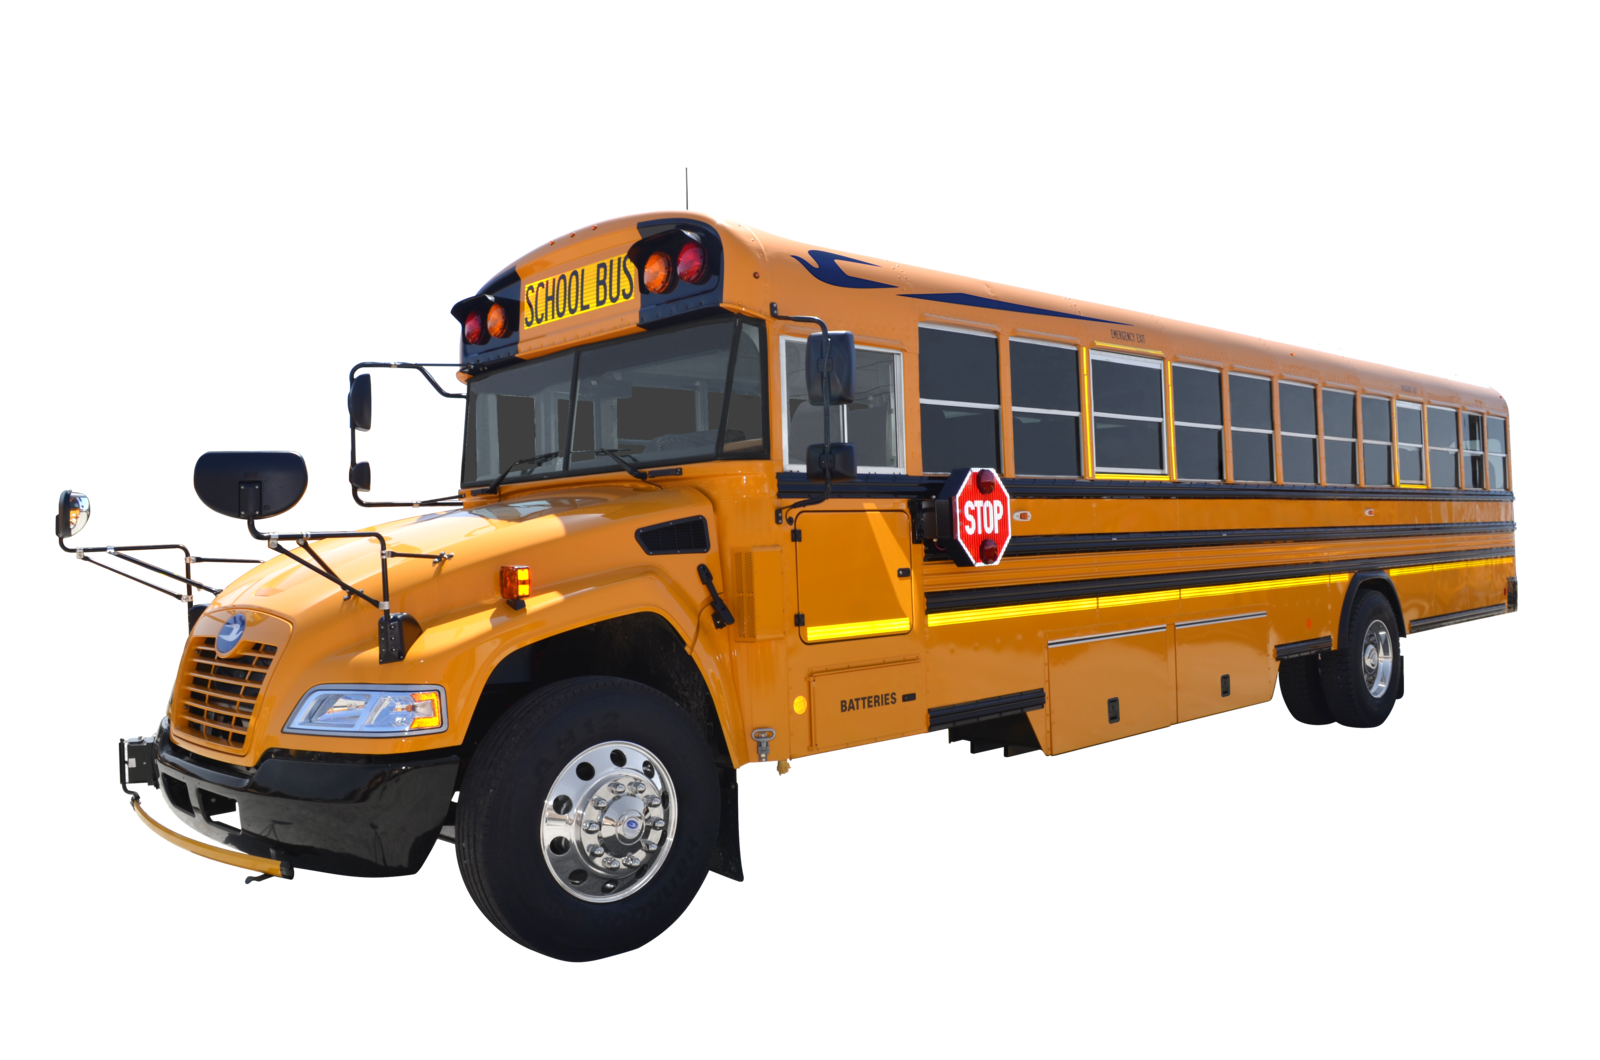 Blue Bird Vision Gasoline School Bus Receives Full Epa And Carb